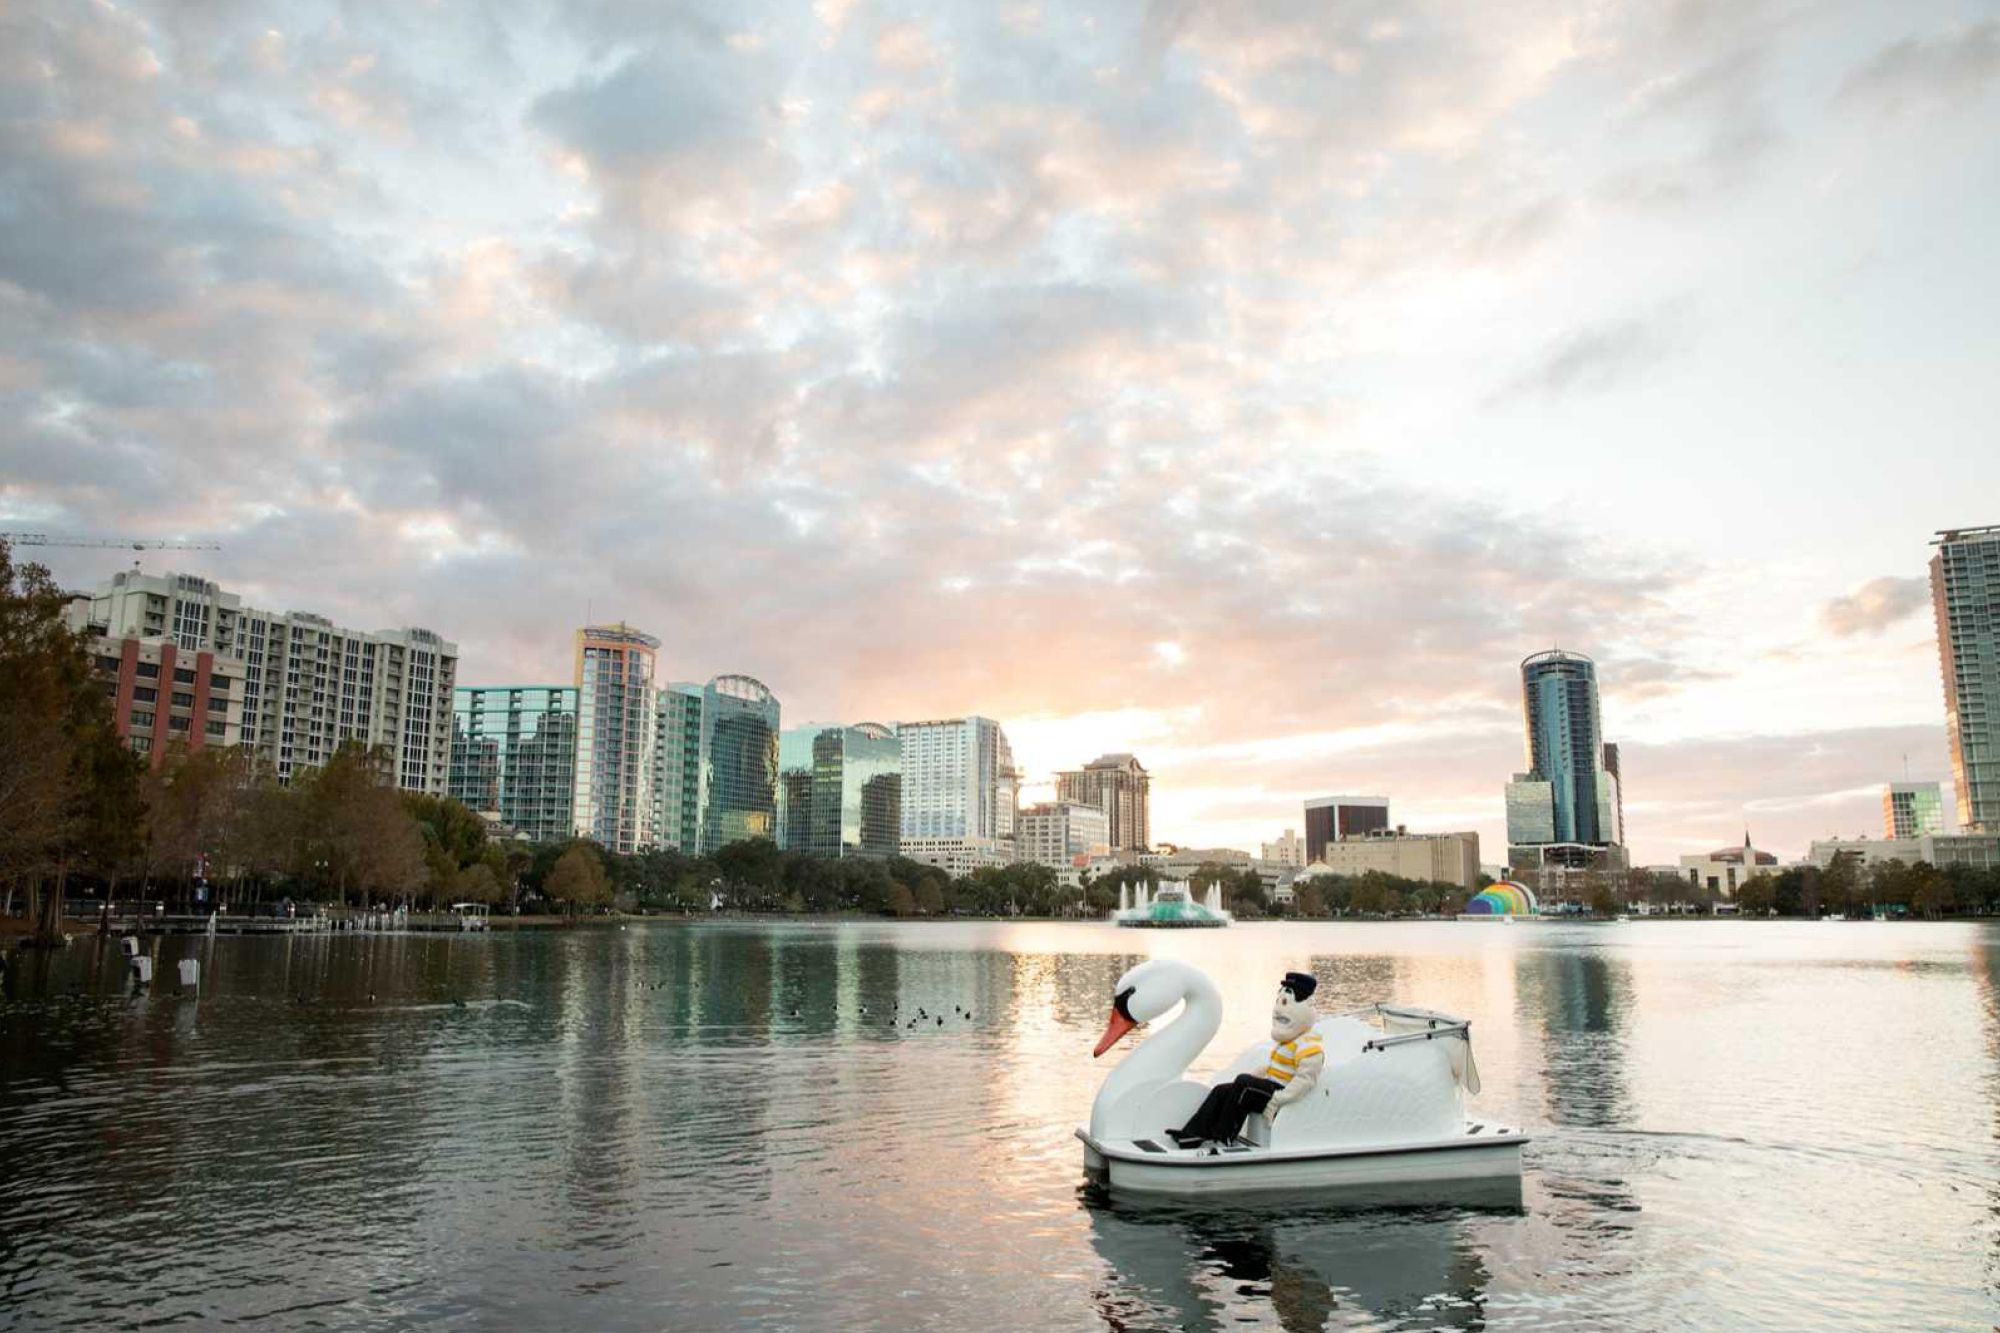 Tommy Tar the Rollins mascot enjoys a paddle around Orlando's Lake Eola in an iconic swan boat.